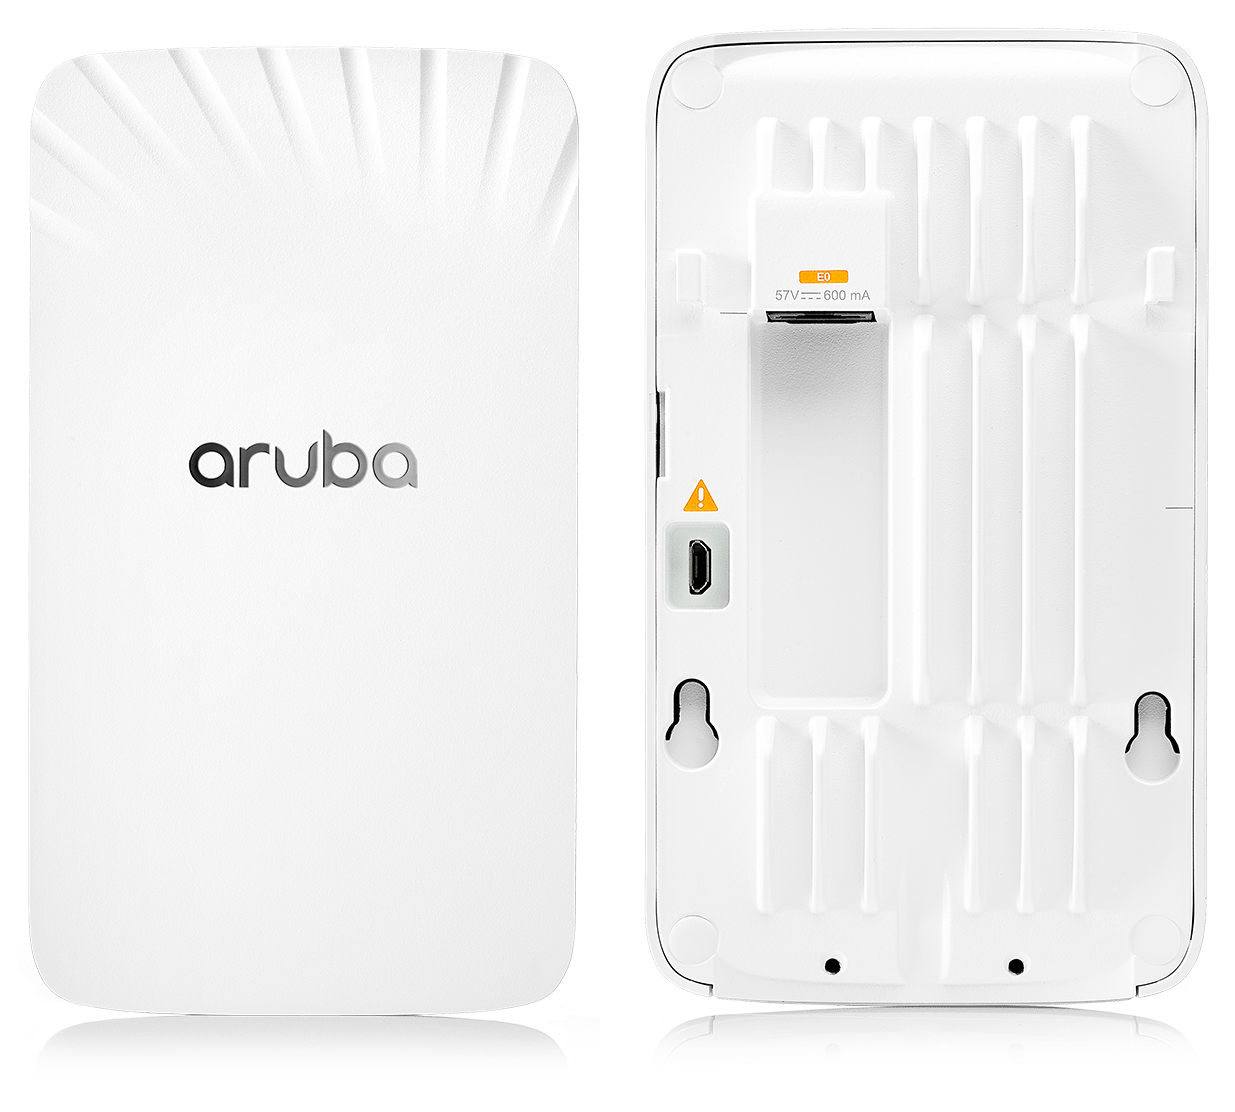 Details and Specifications for the Aruba 500H Series APs